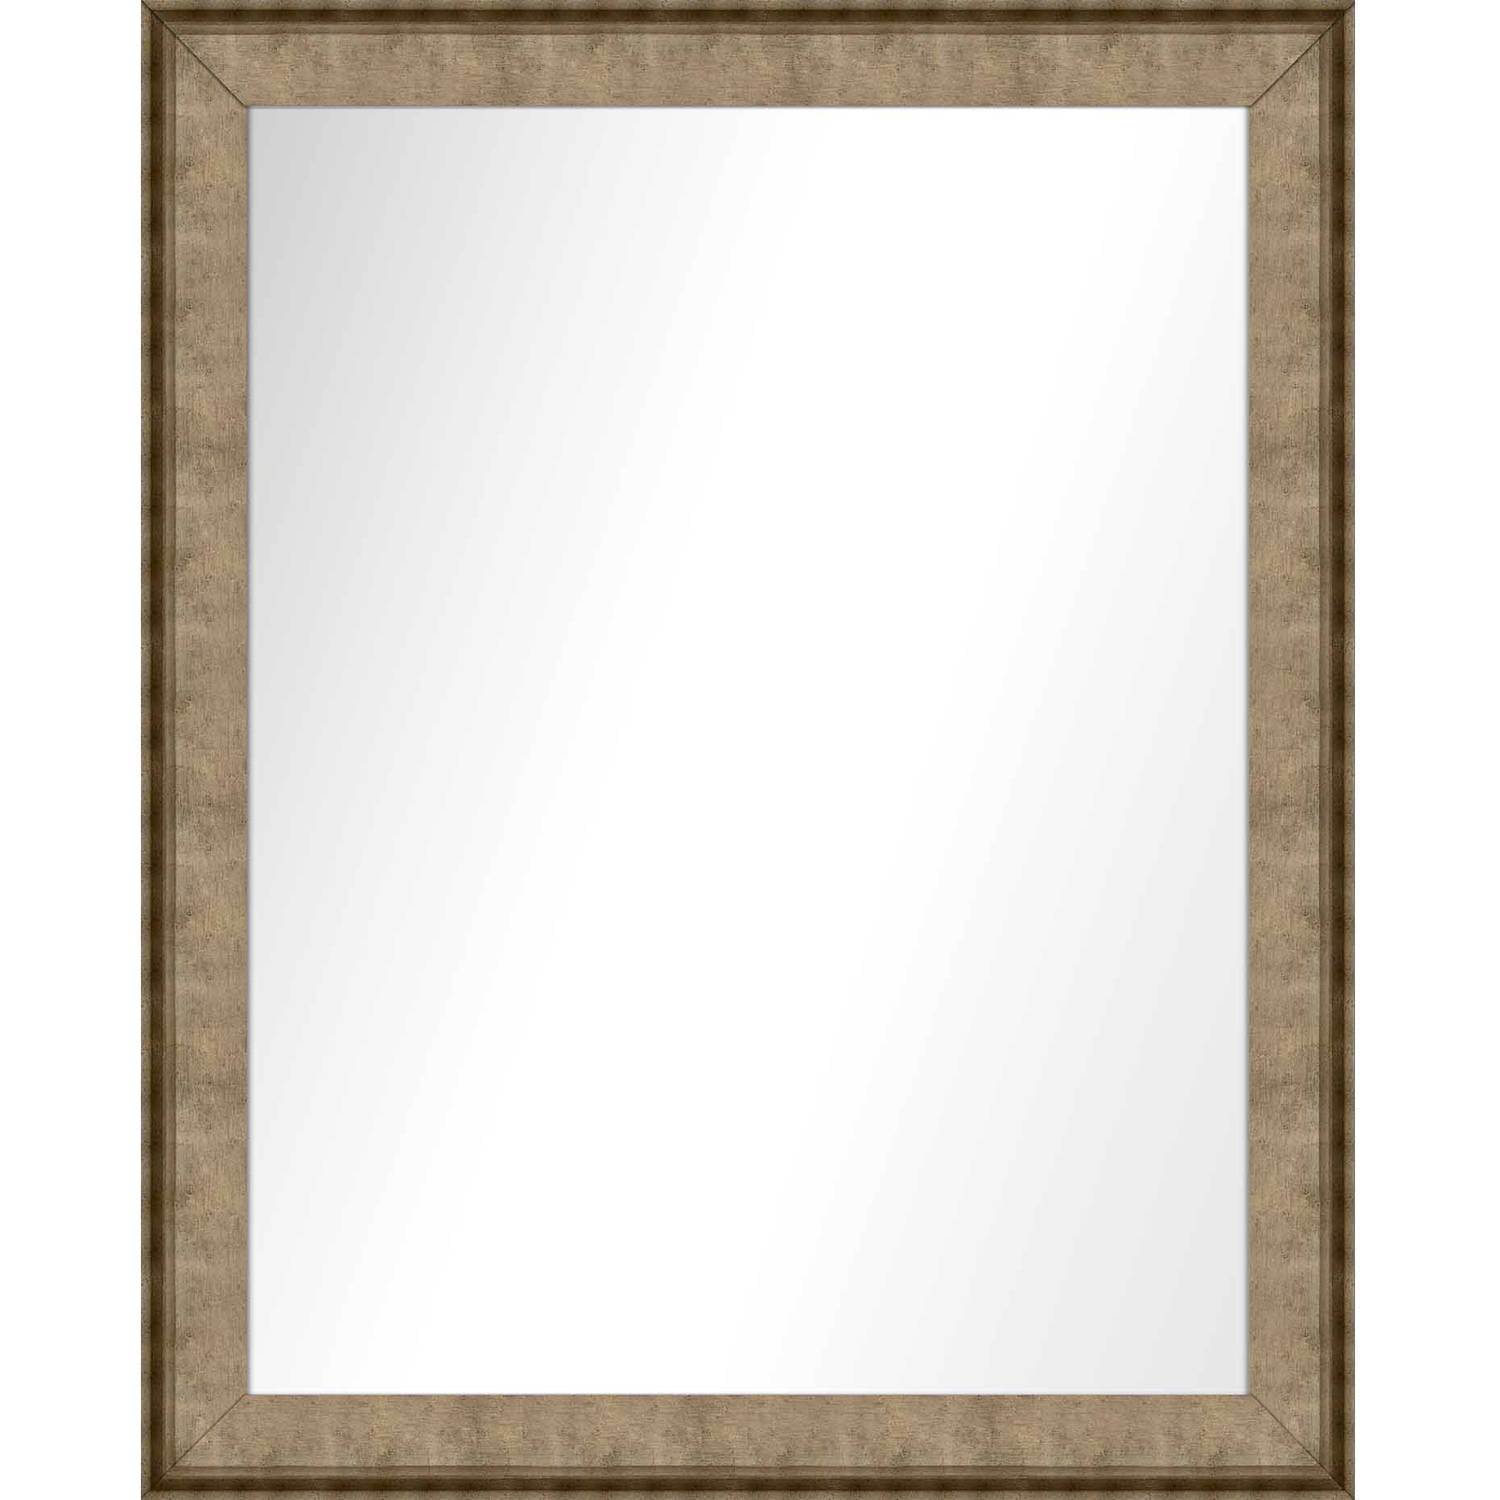 Vanity Mirror, Medium Champagne, 25.5x31.5 by PTM Images